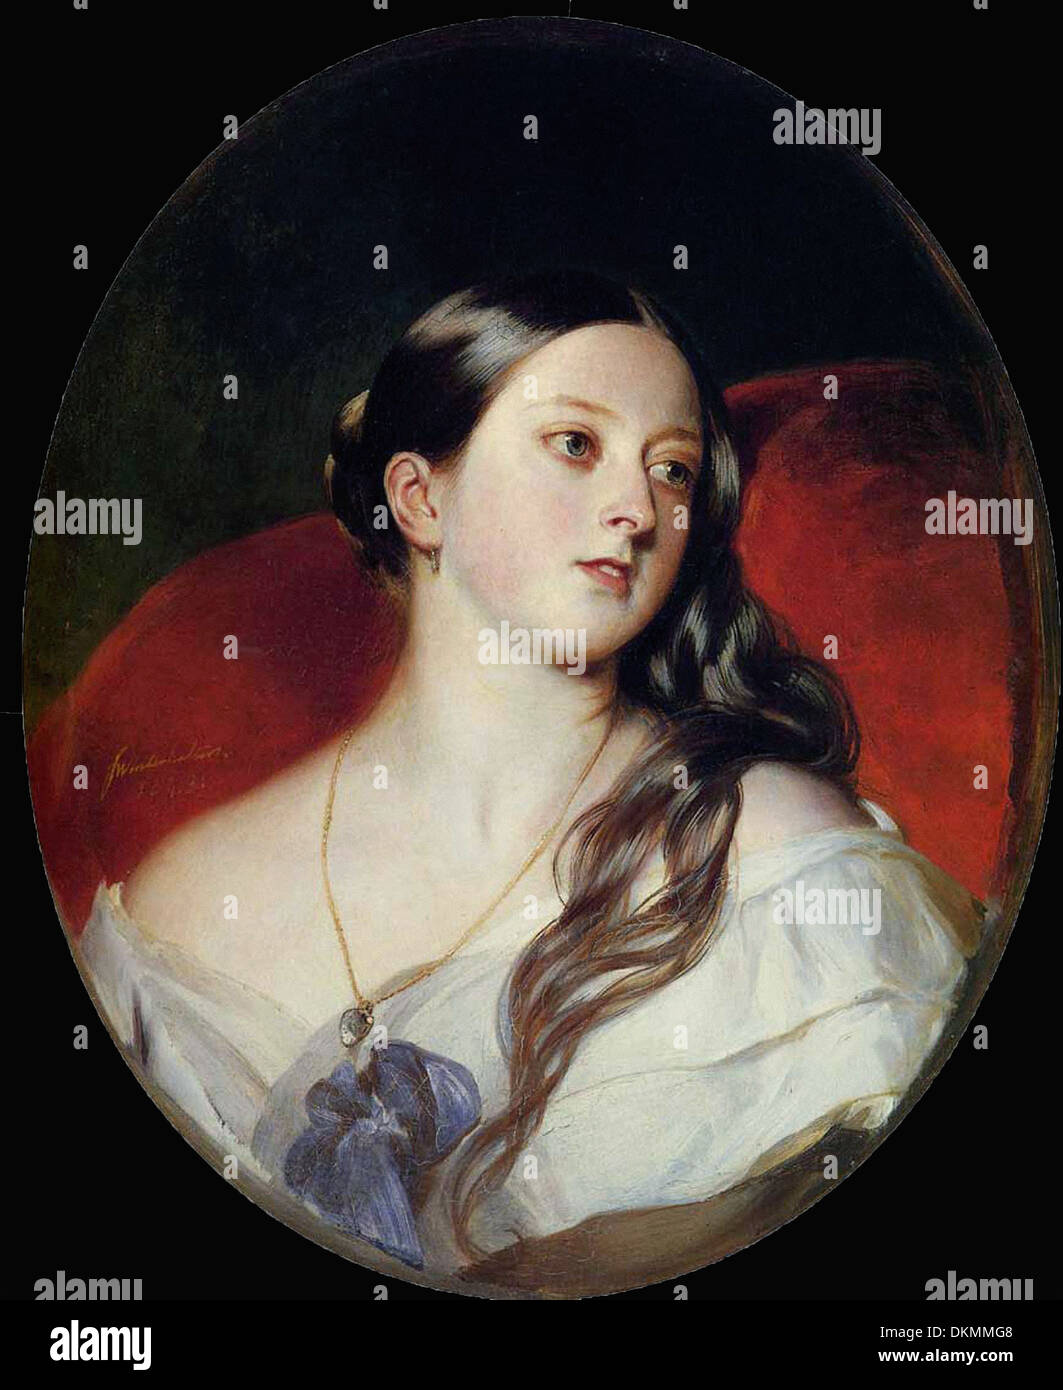 Franz Xaver Winterhalter - Portrait of young Queen Victoria - Stock Image